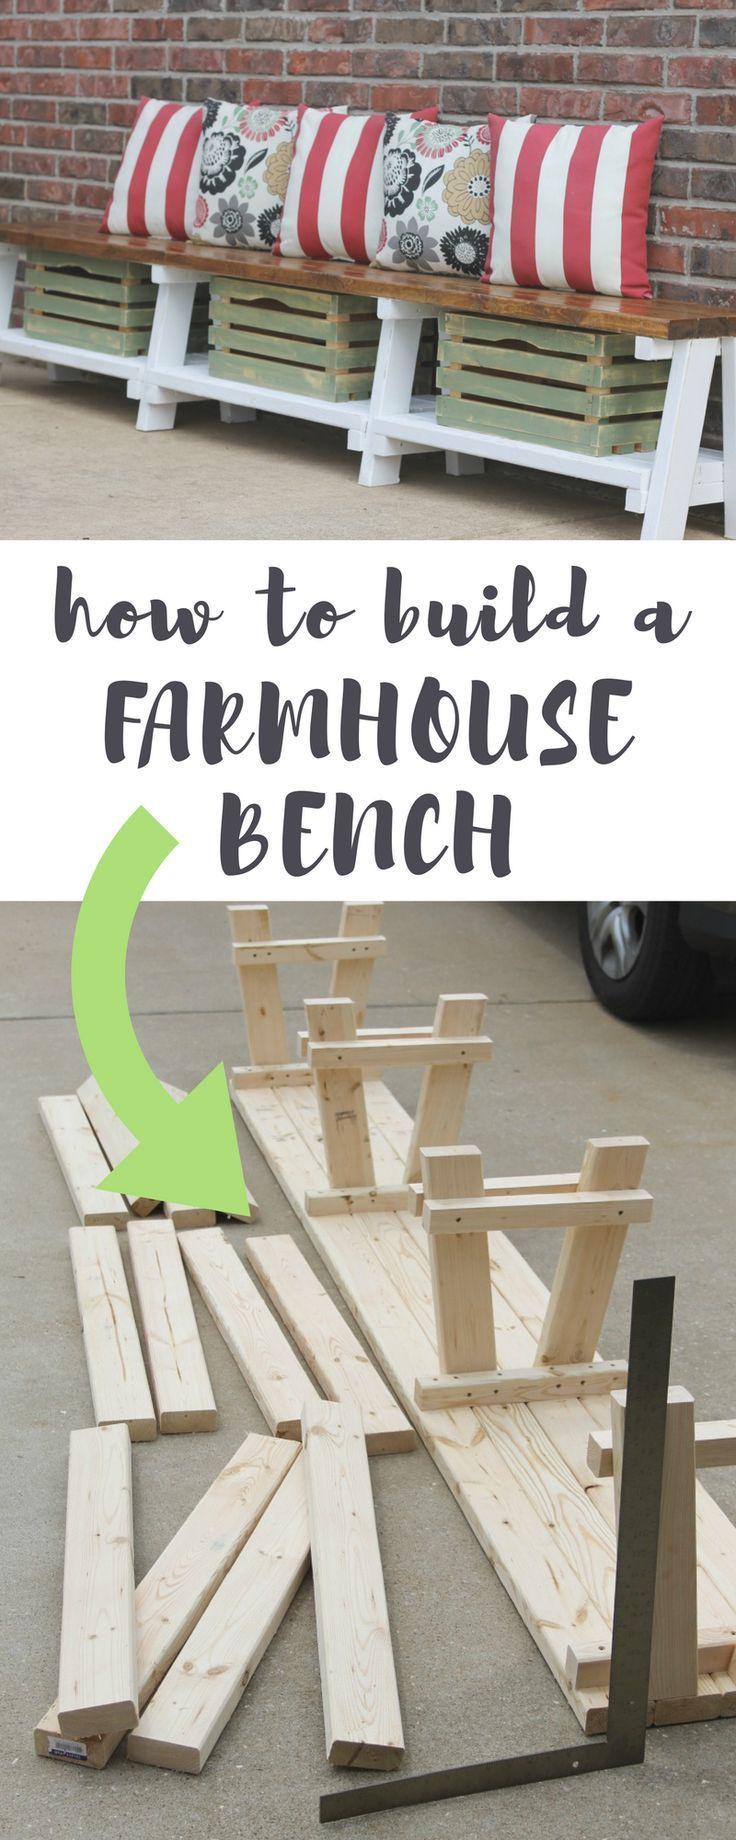 >> Find out more about Construct this farmhouse bench with storage in 10 easy steps....